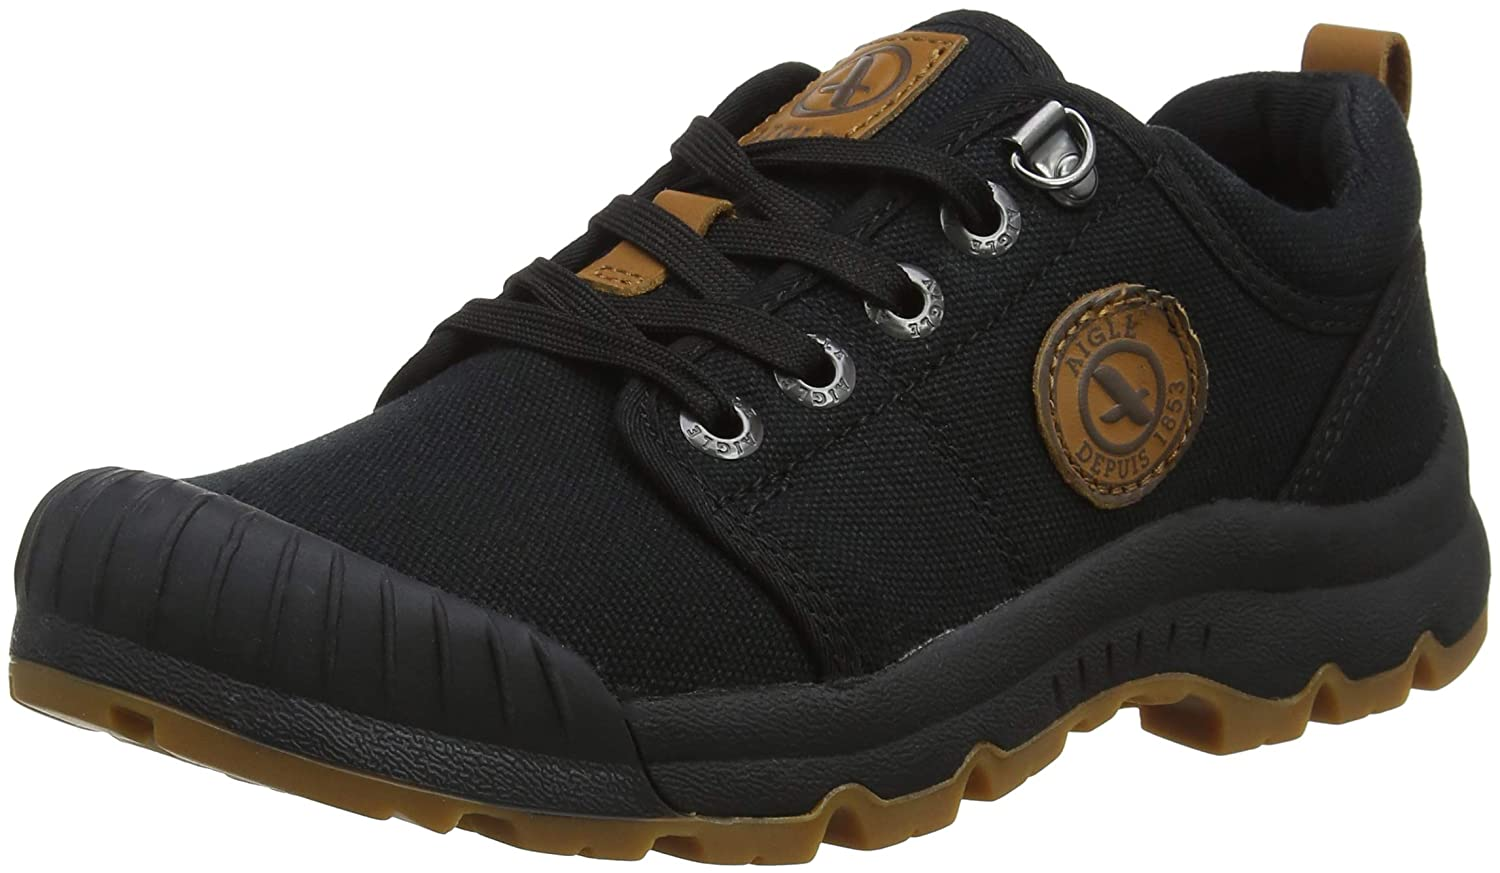 Aigle Damen Tenere Light Low CVS W Trekking-& Wanderhalbschuhe